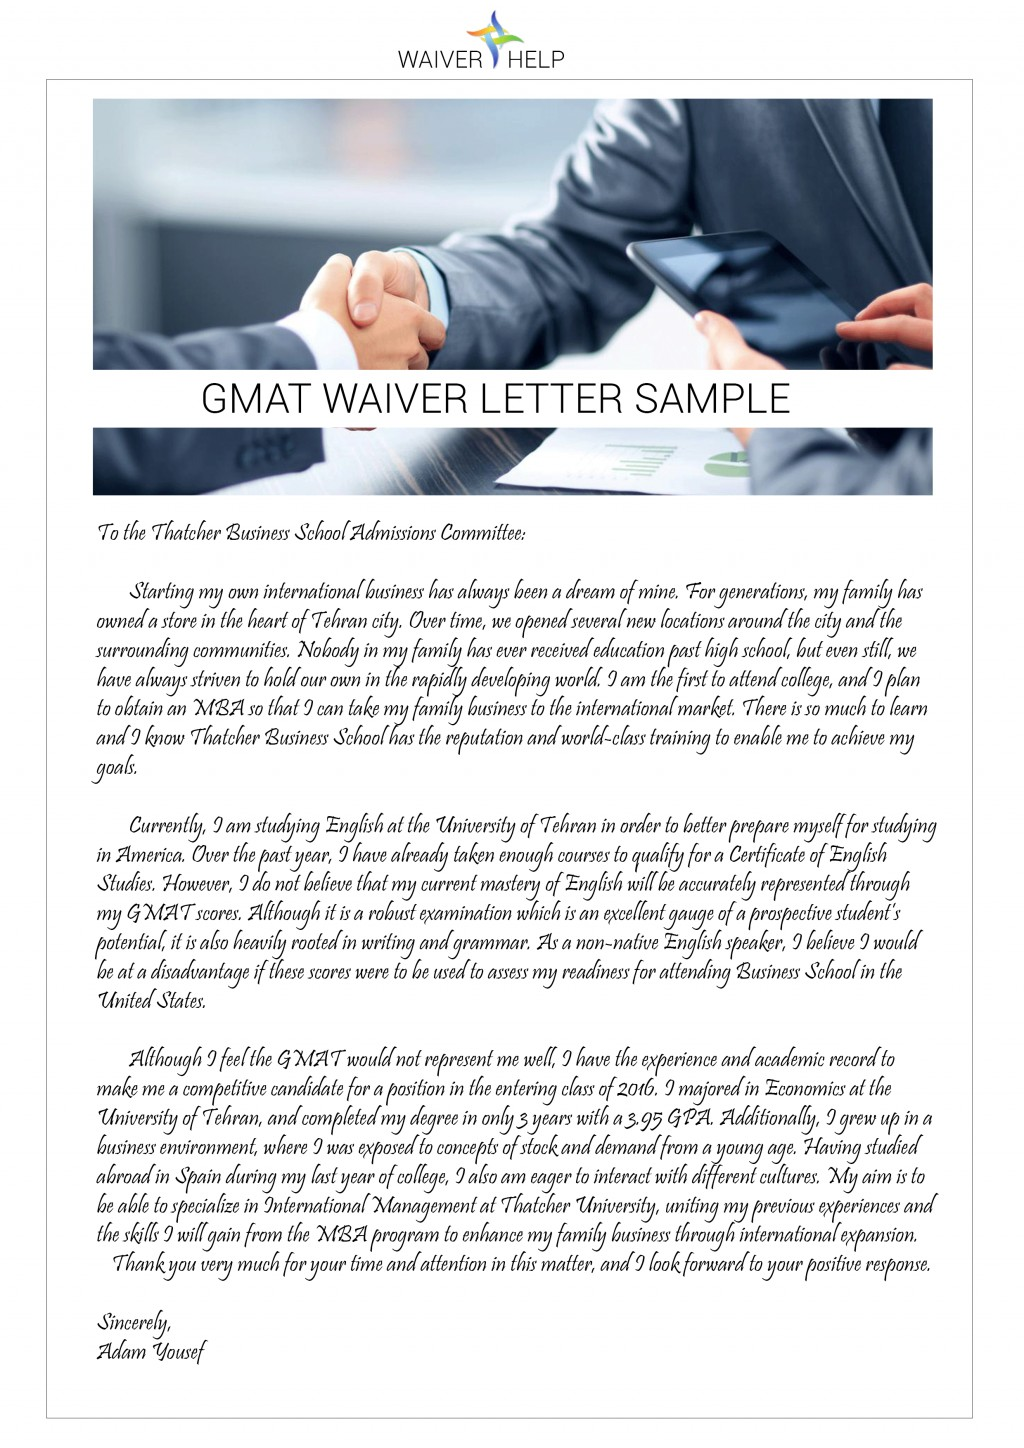 011 Gmat Essay Sample Example Awesome Gre Essays Resume Daily L Shocking Waiver Topics Awa Free Download Large